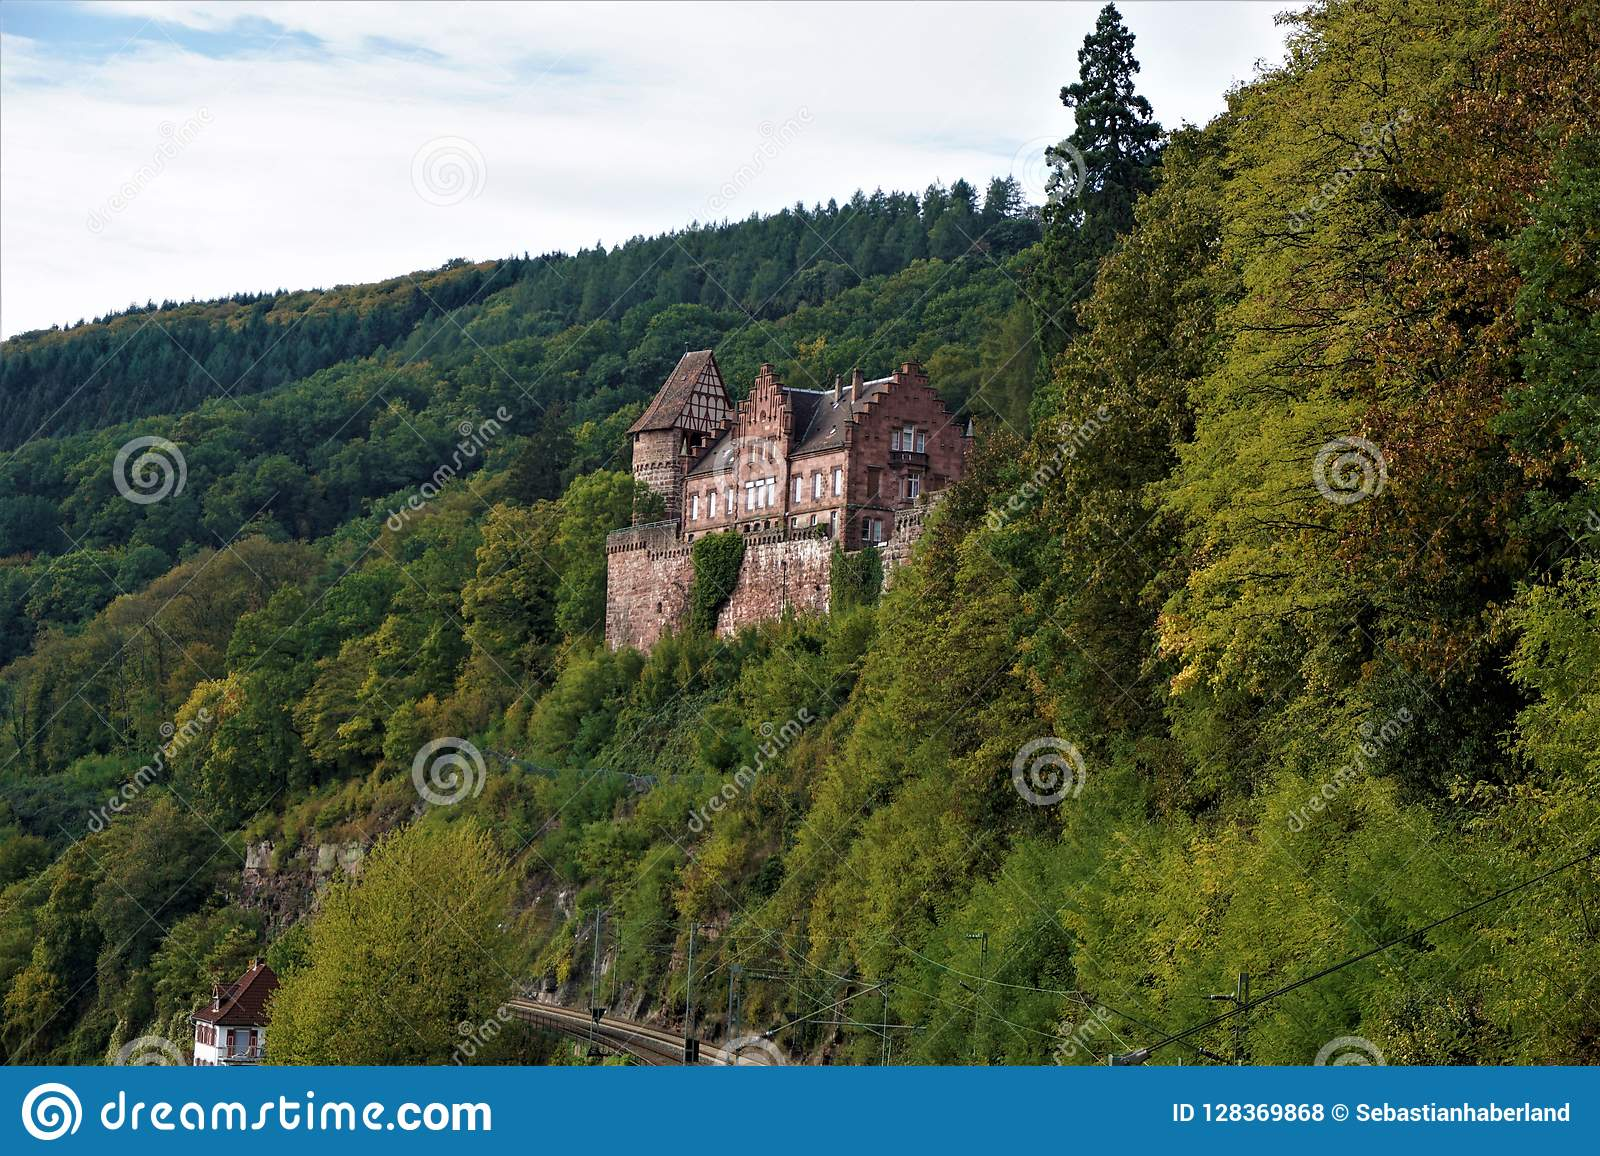 Map Zwingenberg Germany.Zwingenberg Castle Enthroned Over Railway Track In The Odenwald